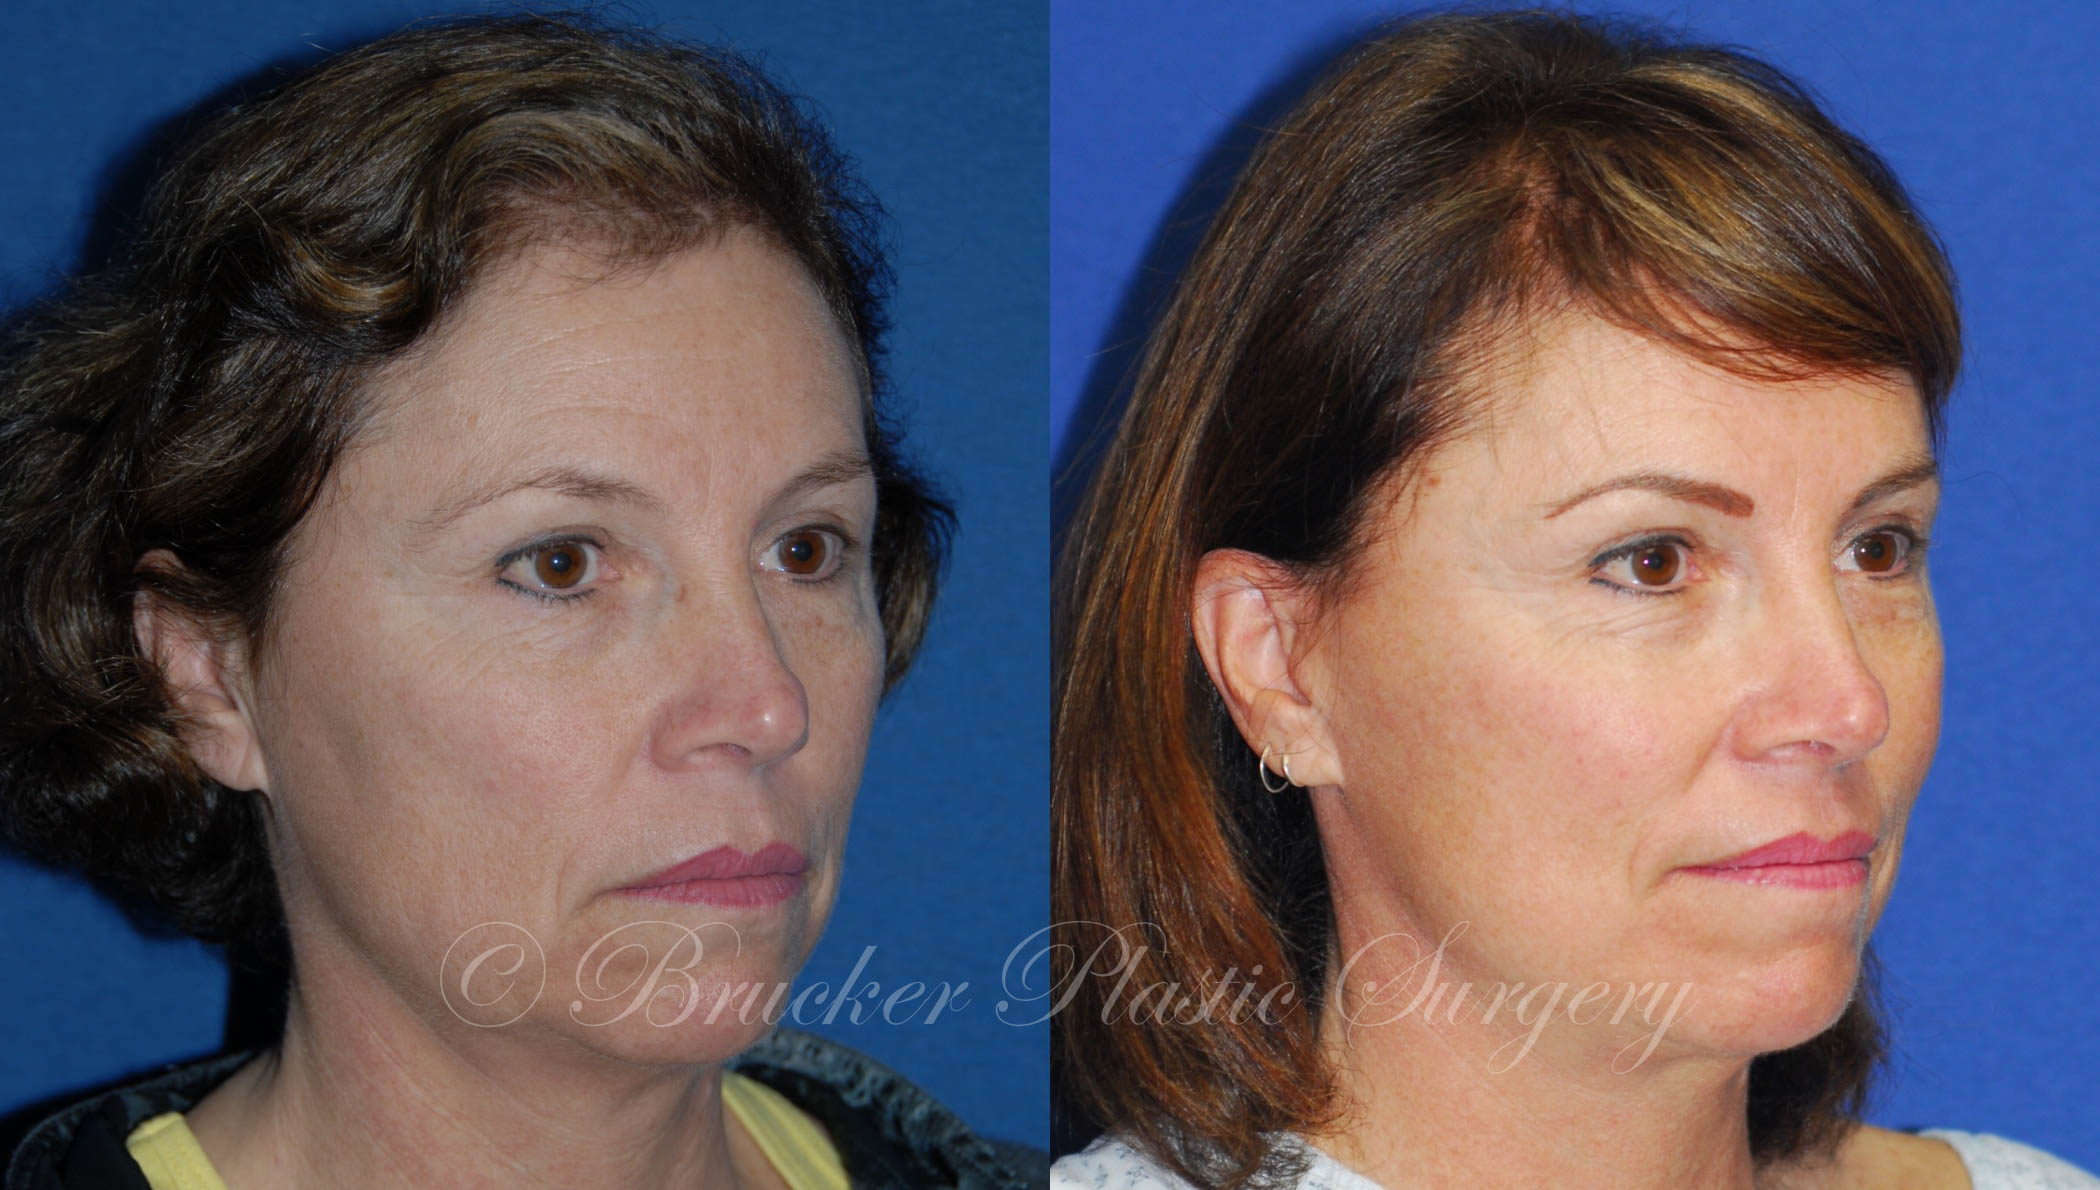 Facelift La Jolla Patient 2.1